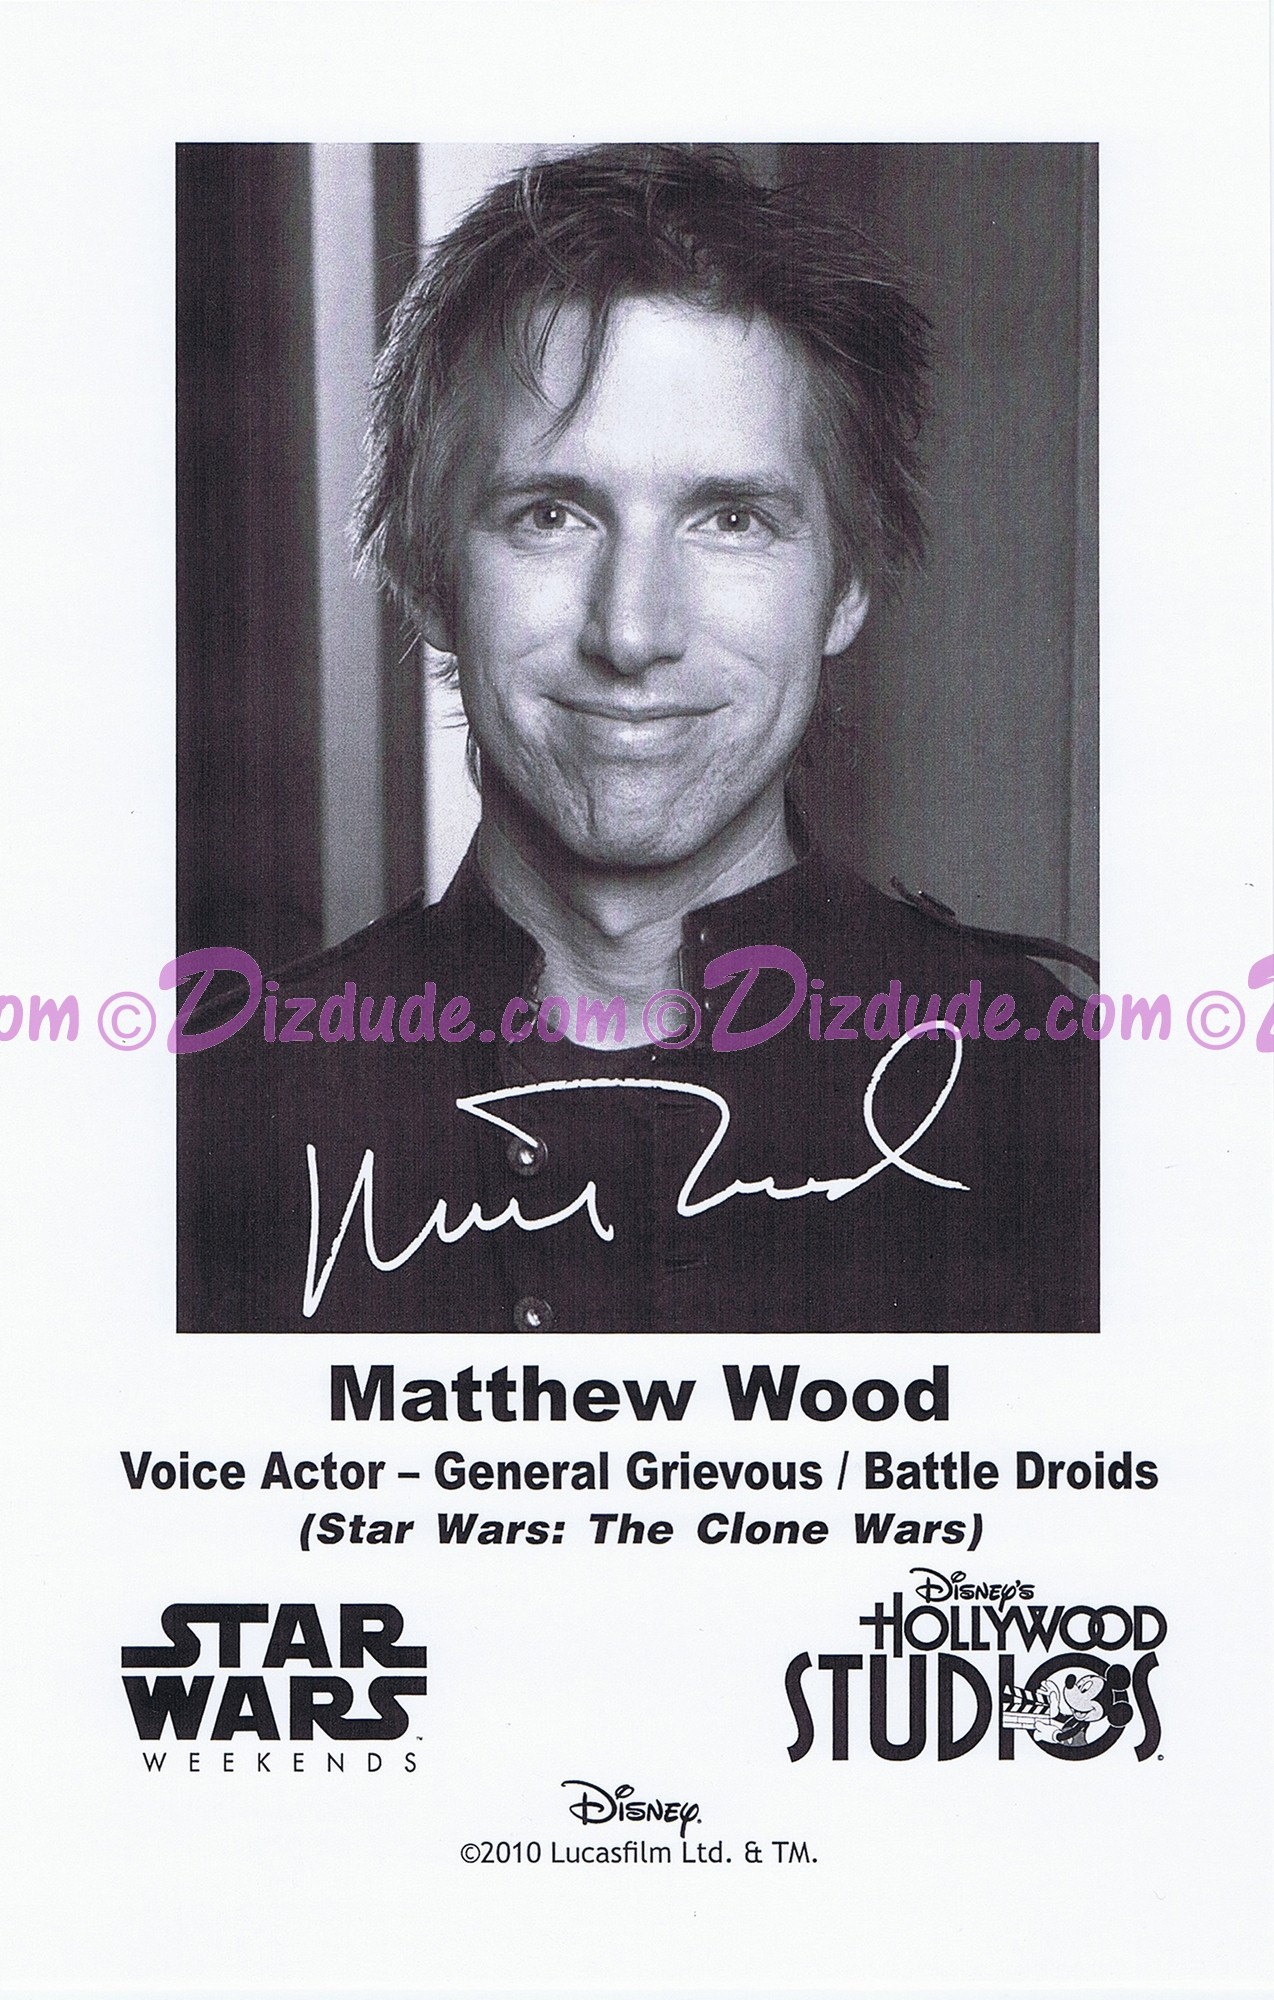 Matthew Wood the voice of General Grievous & Battle Droids Presigned Official Star Wars Weekends 2010 Celebrity Collector Photo © Dizdude.com